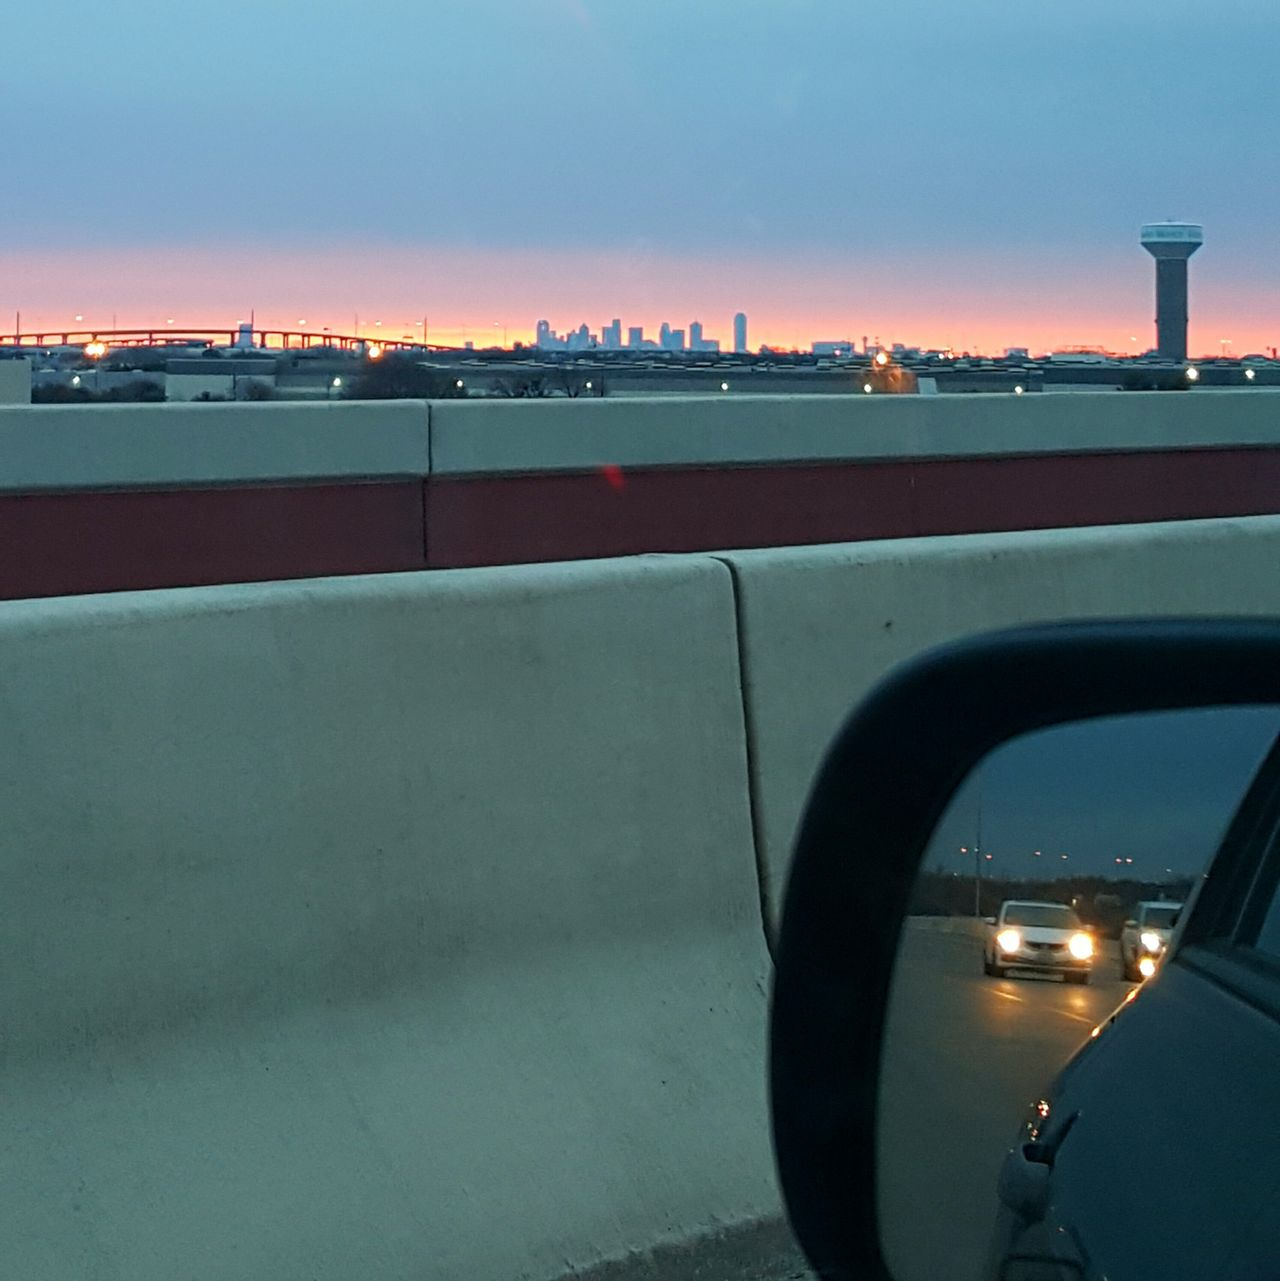 The view from this morning's drive ♡ Dallasskyline Sunrise Frommypointofview ItsAllAboutTheAngles WorkTheAngle Reflections Dallas Texas ComeExploreWithMe